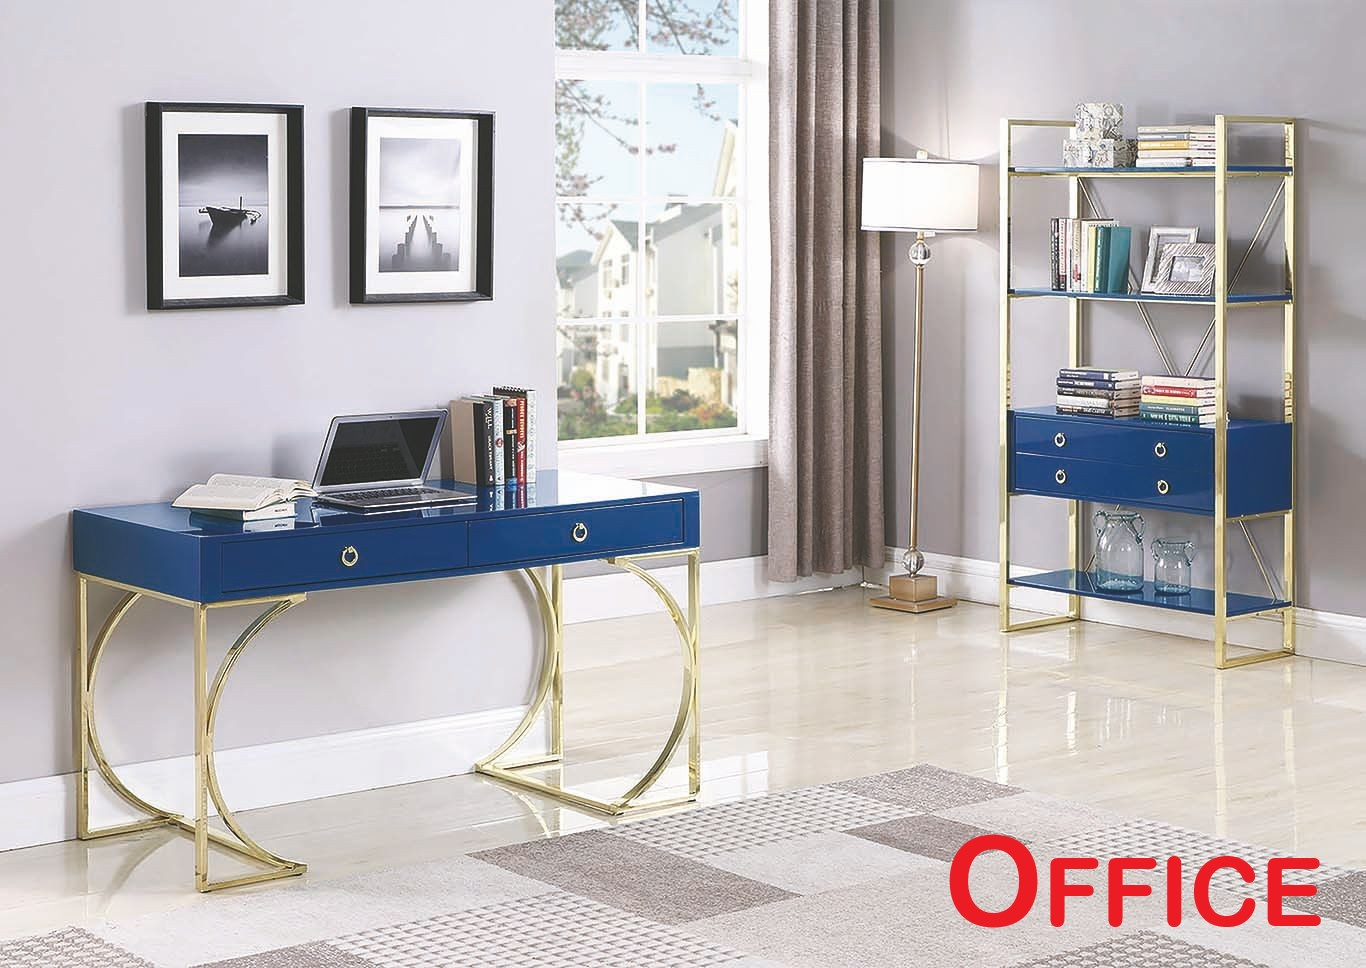 Home Office - Browse Now